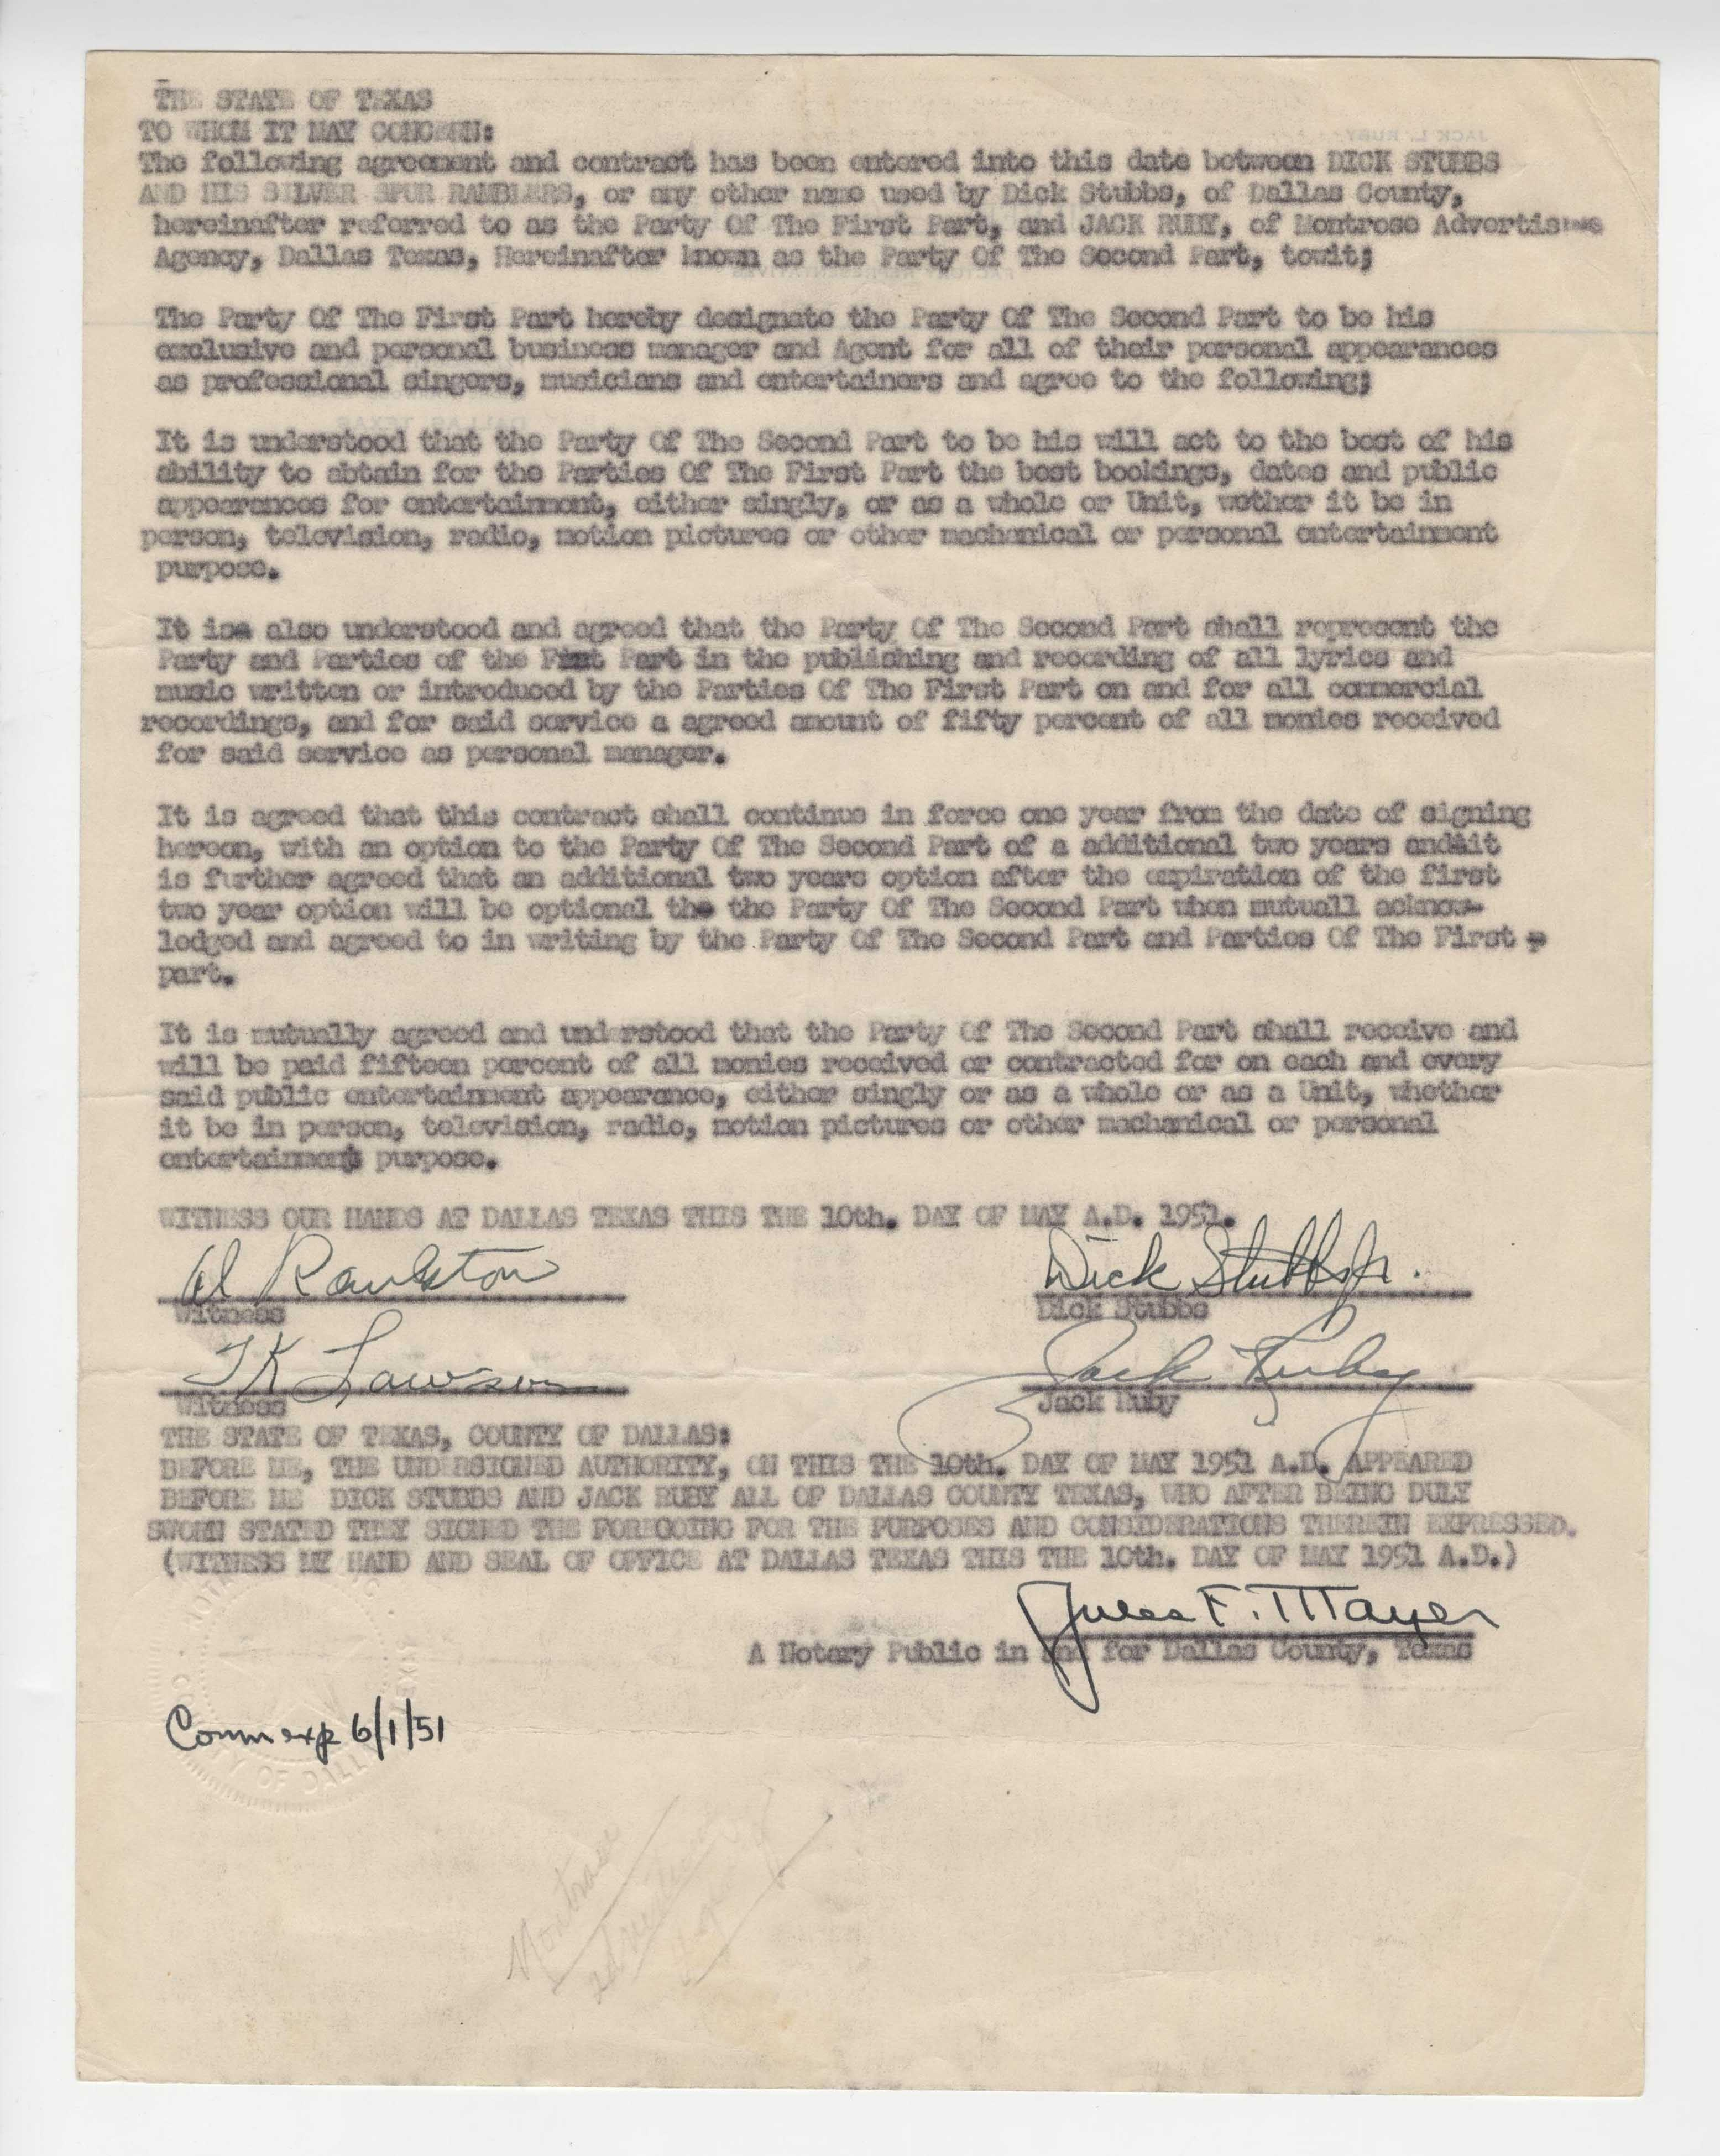 Jack Ruby Signed Entertainment Contract